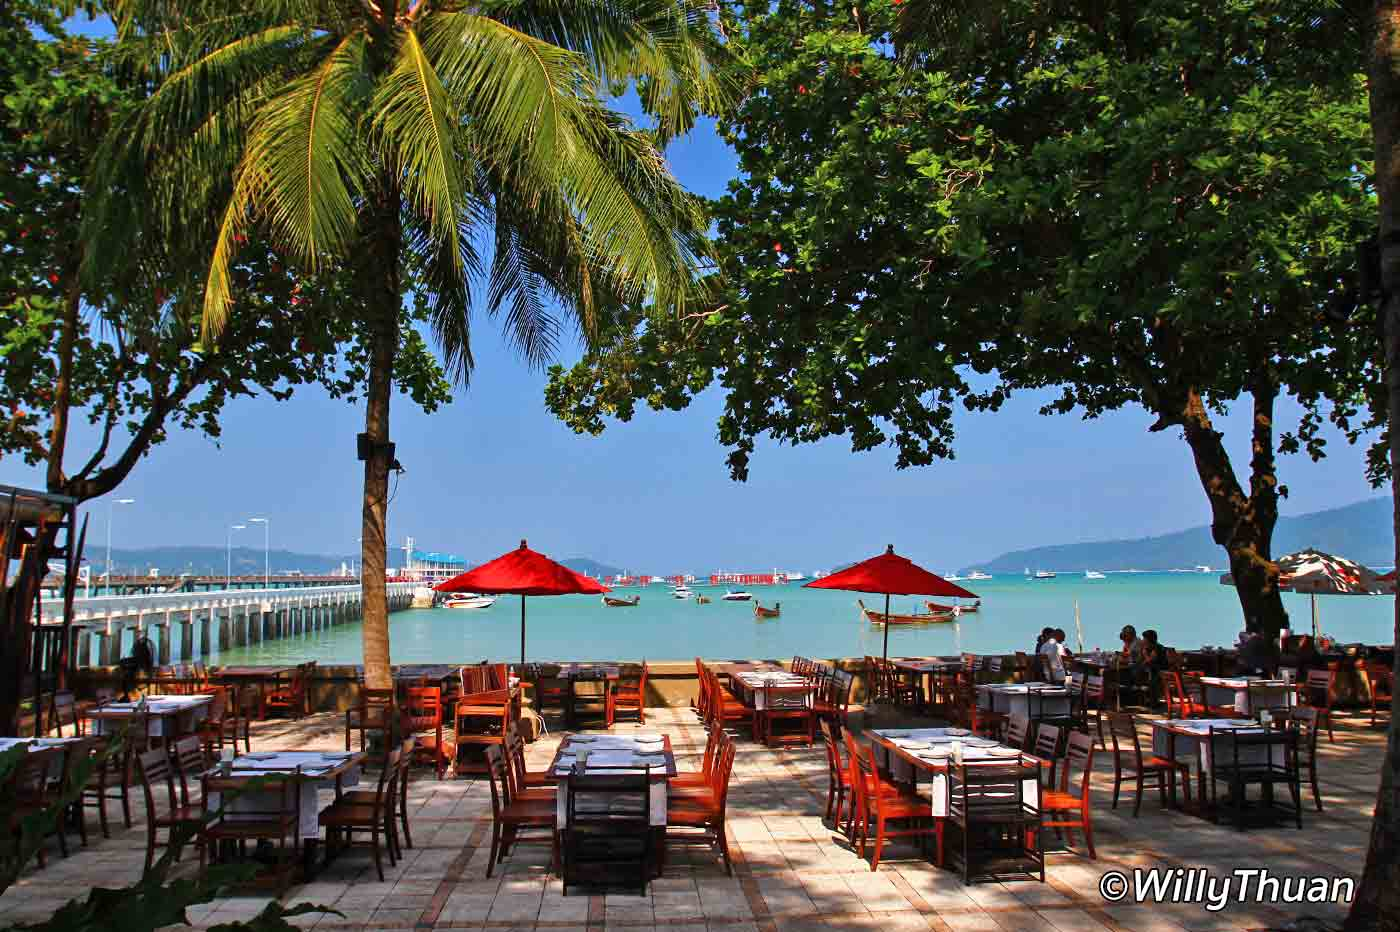 Phuket Restaurants – Where to Eat in Phuket